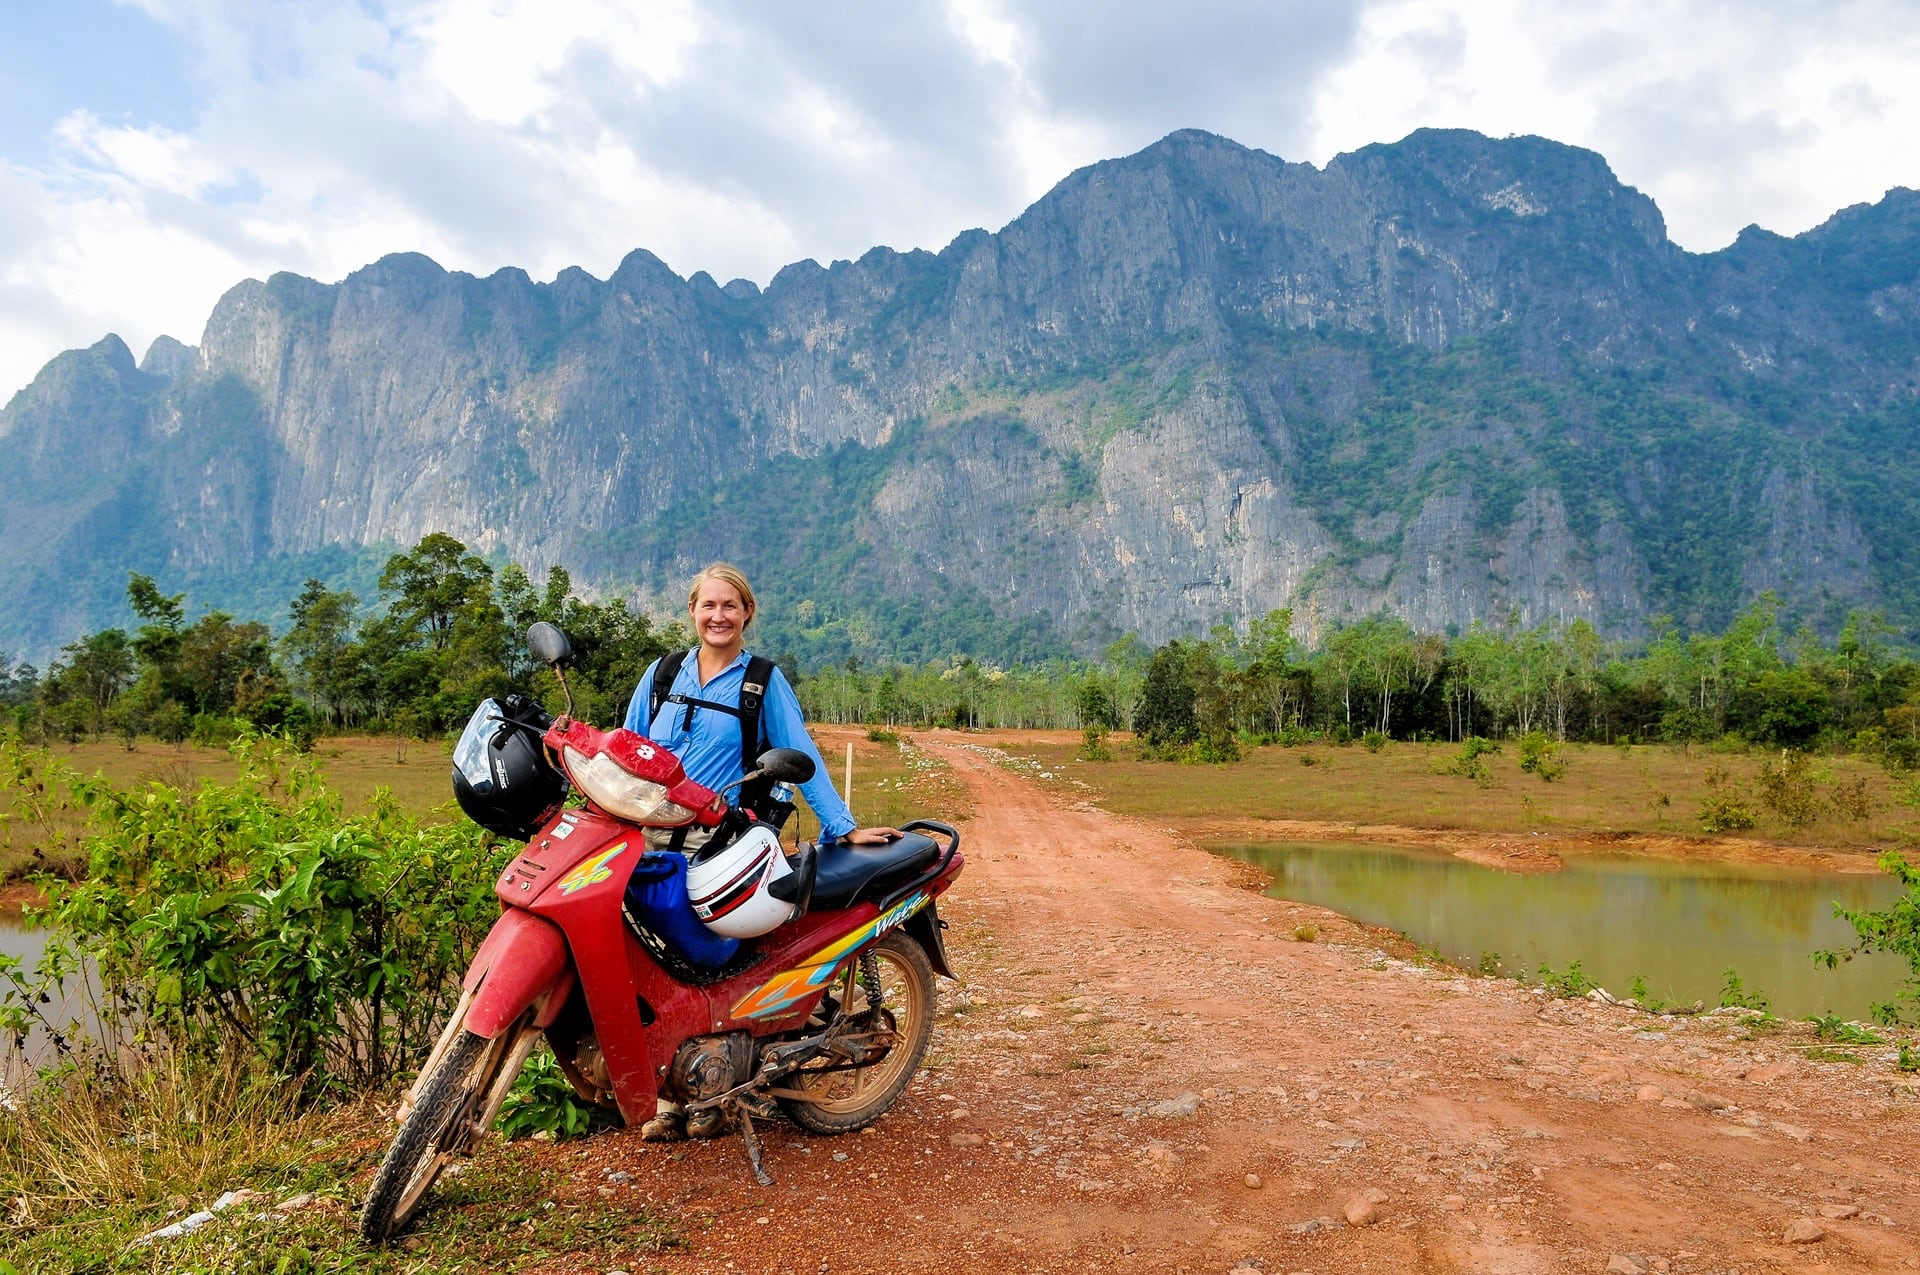 Thakhek Loop motorbiking adventure in Laos